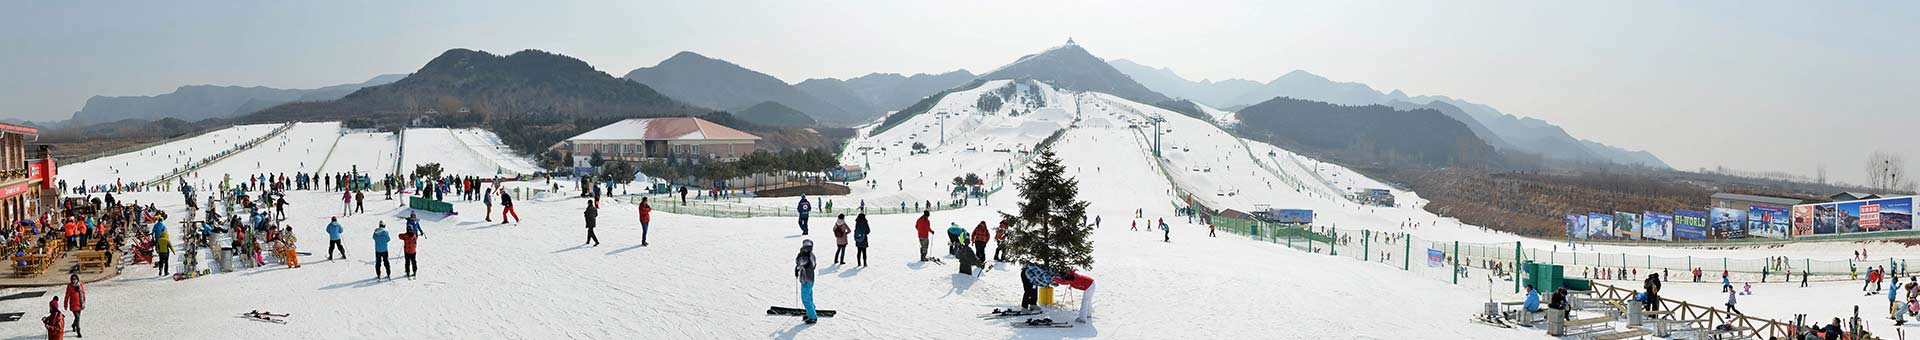 1 Day Nanshan Ski Resort and Chunhuiyuan Hot Spring Tour